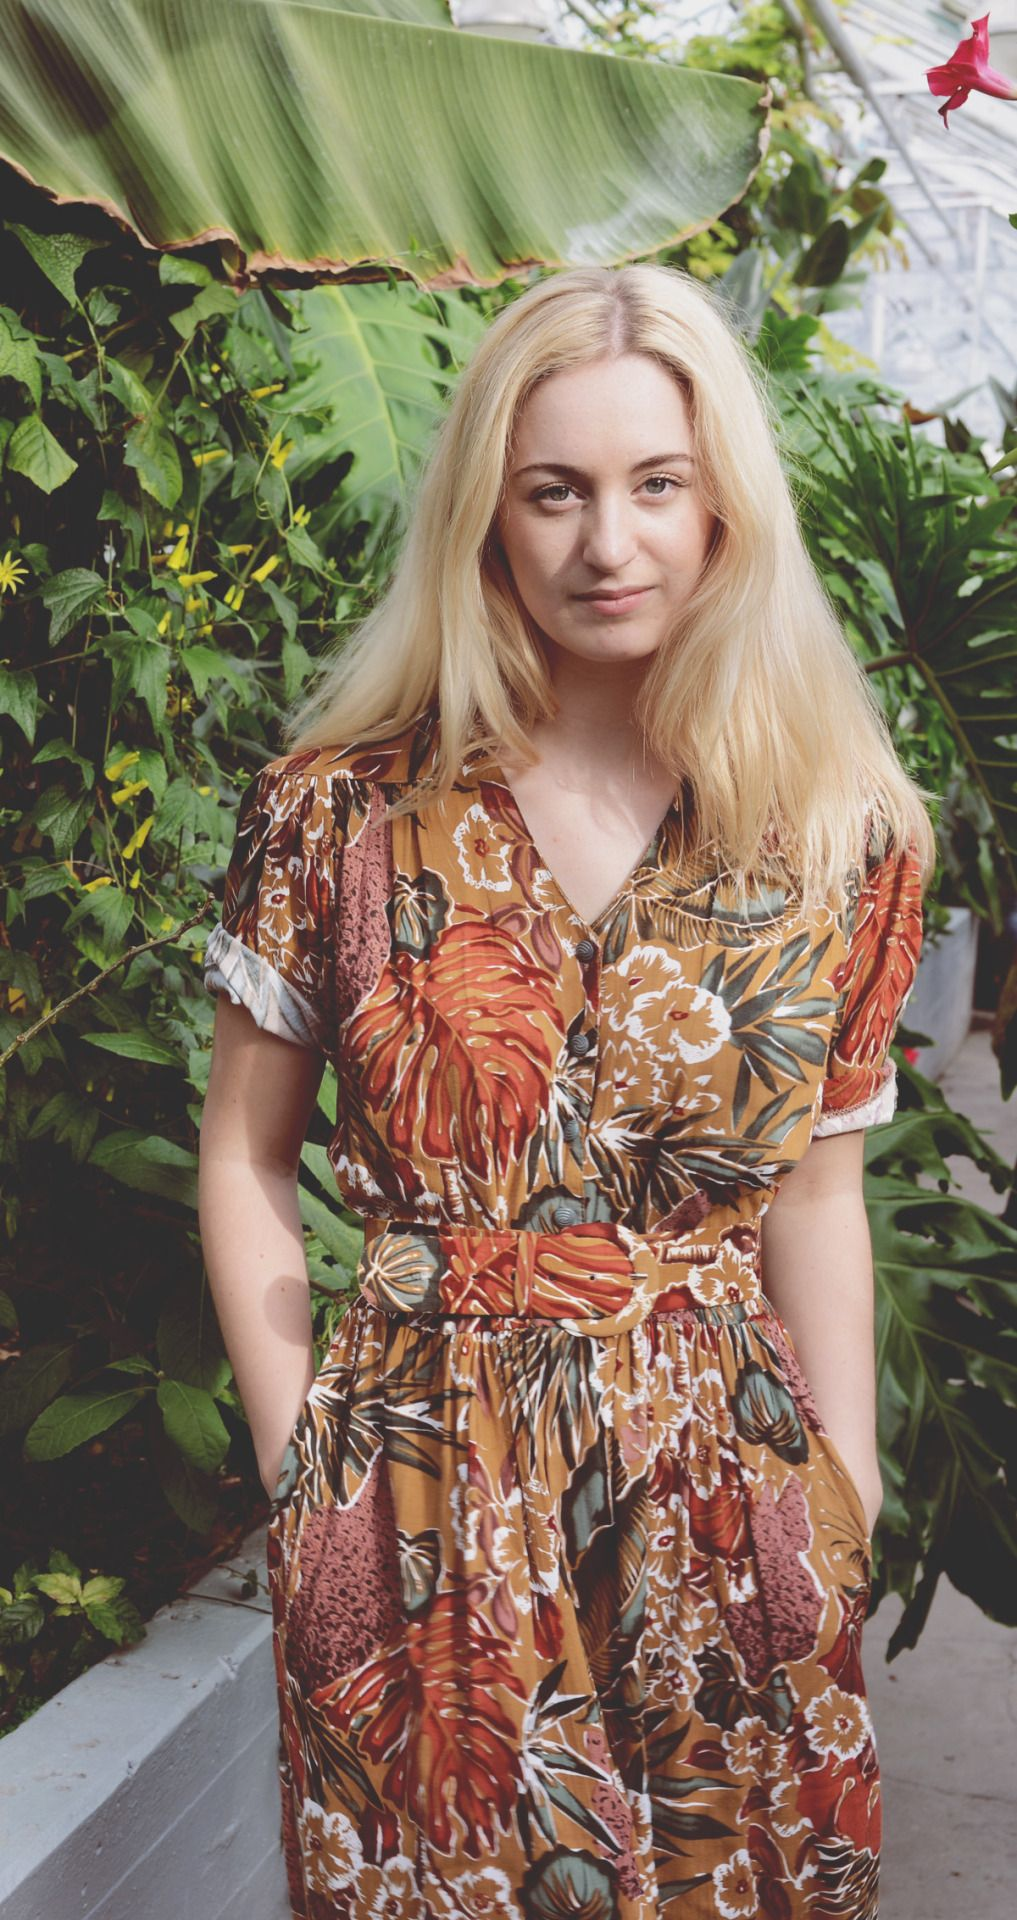 Vintage Safari Floral Dress from the 1980s